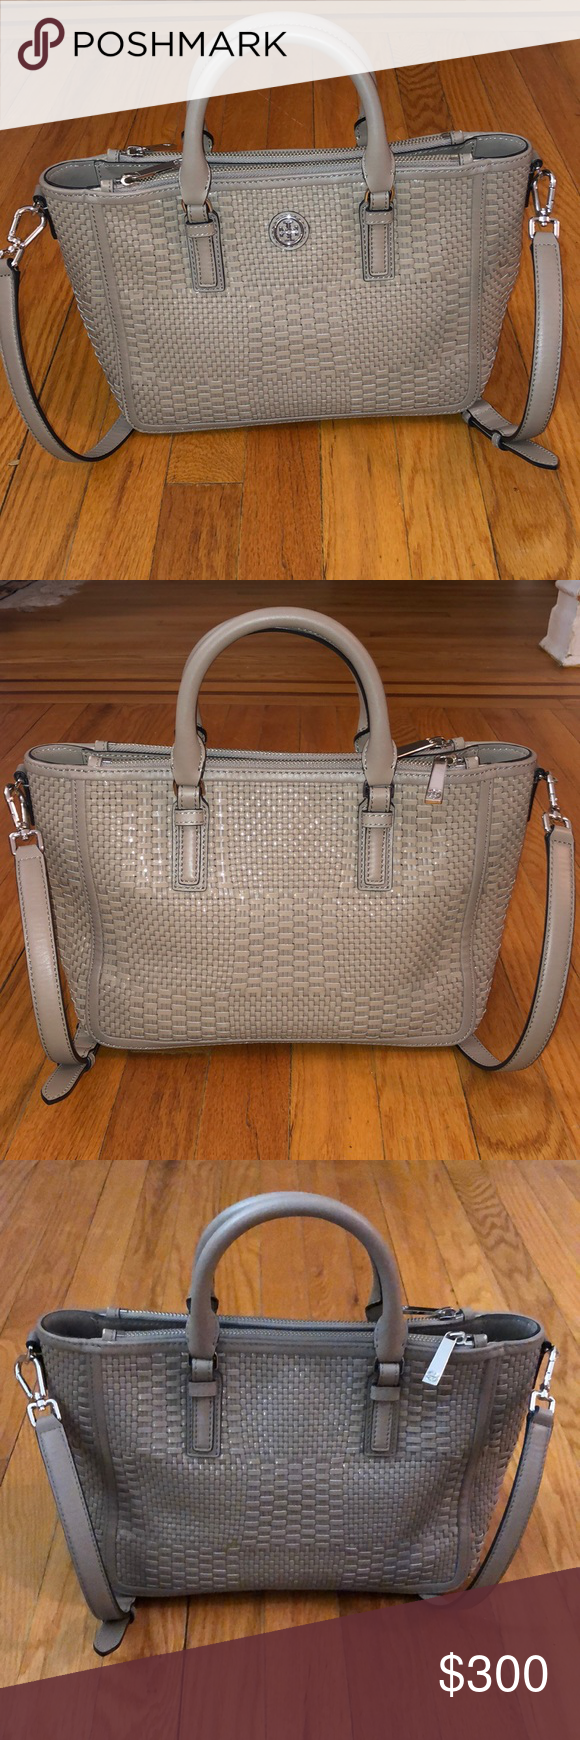 54bee4809 Robinson Square Brown Pebbled Leather Tote | Tory Burch Multi Tote